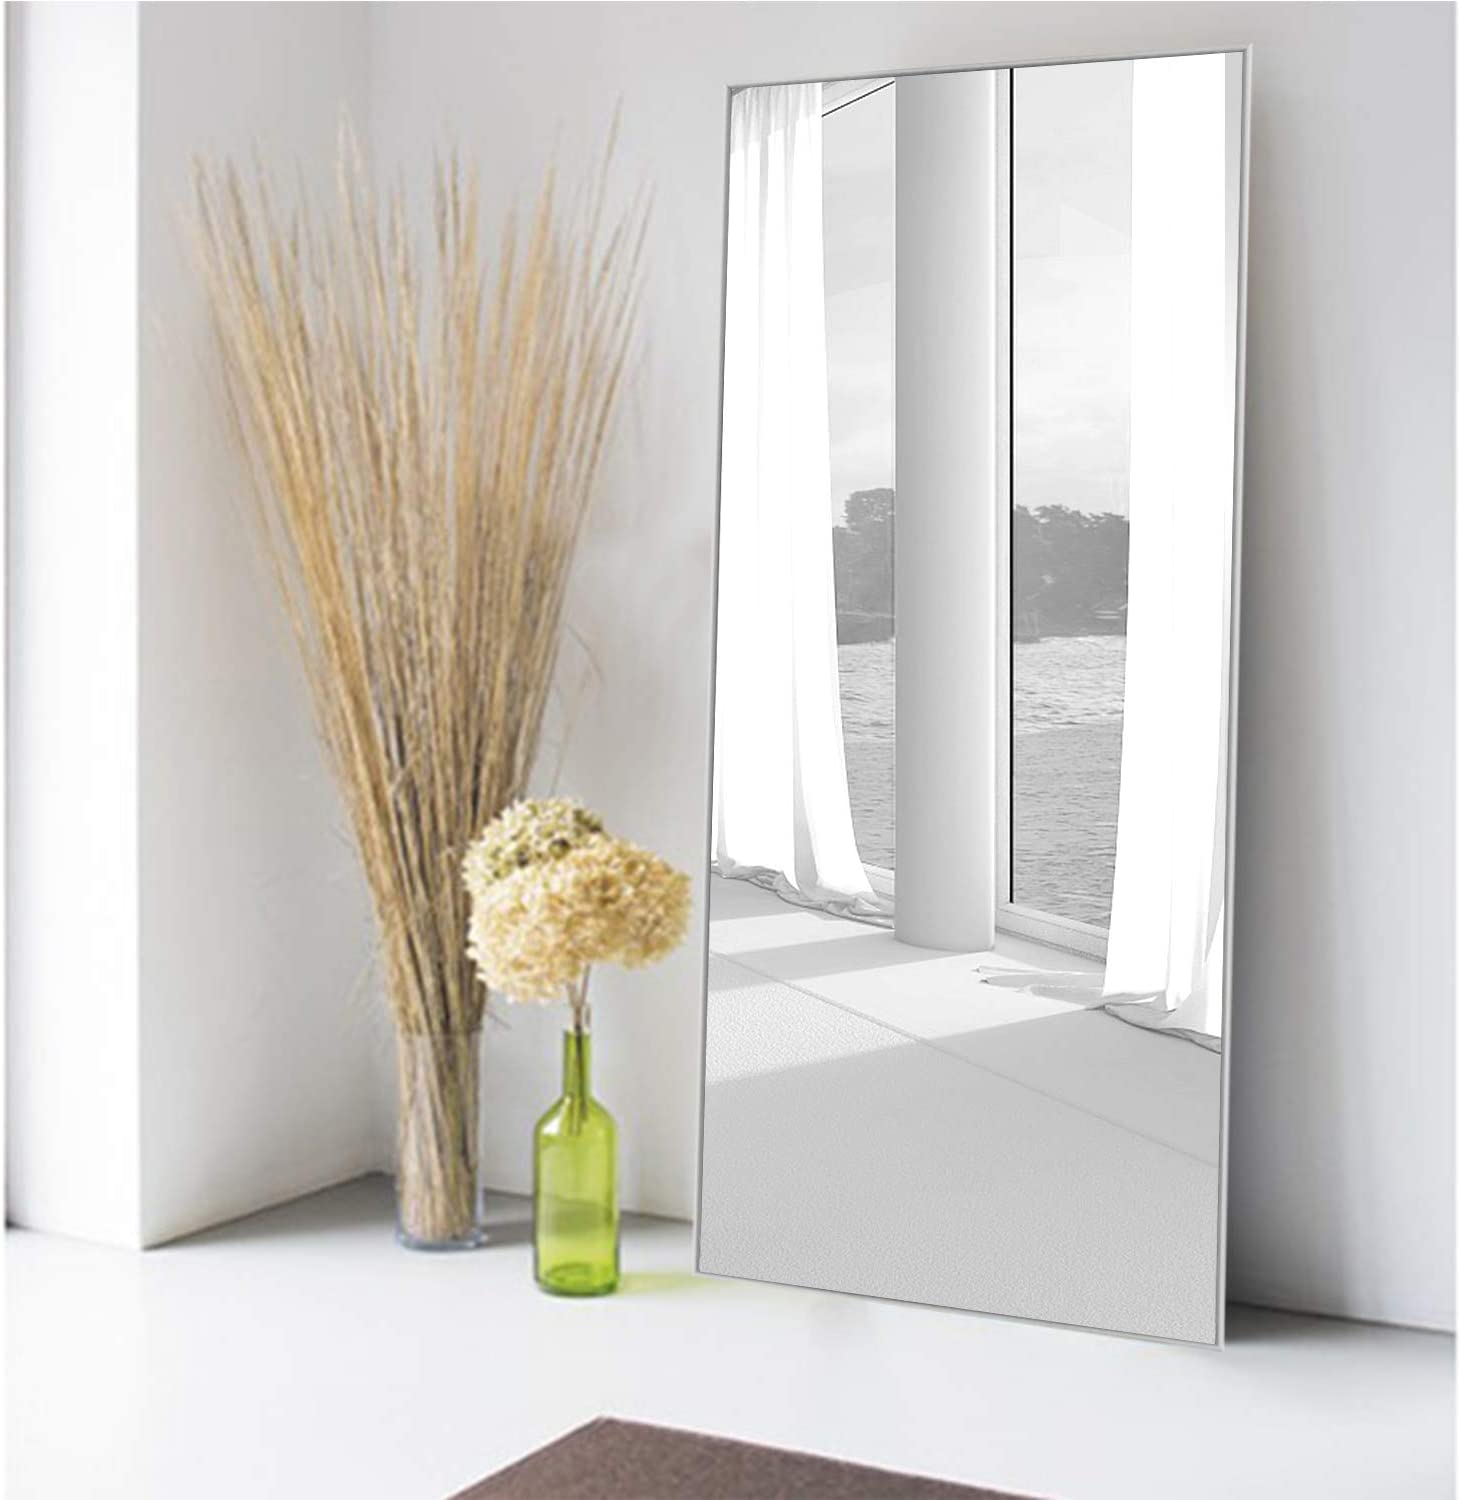 MIRUO Full Length Mirror Decor Wall Mounted Mirror Floor Mirror Dressing Mirror Make Up Mirror Bathroom/Bedroom/Living Room/Dining Room/Entry, Silver, 47